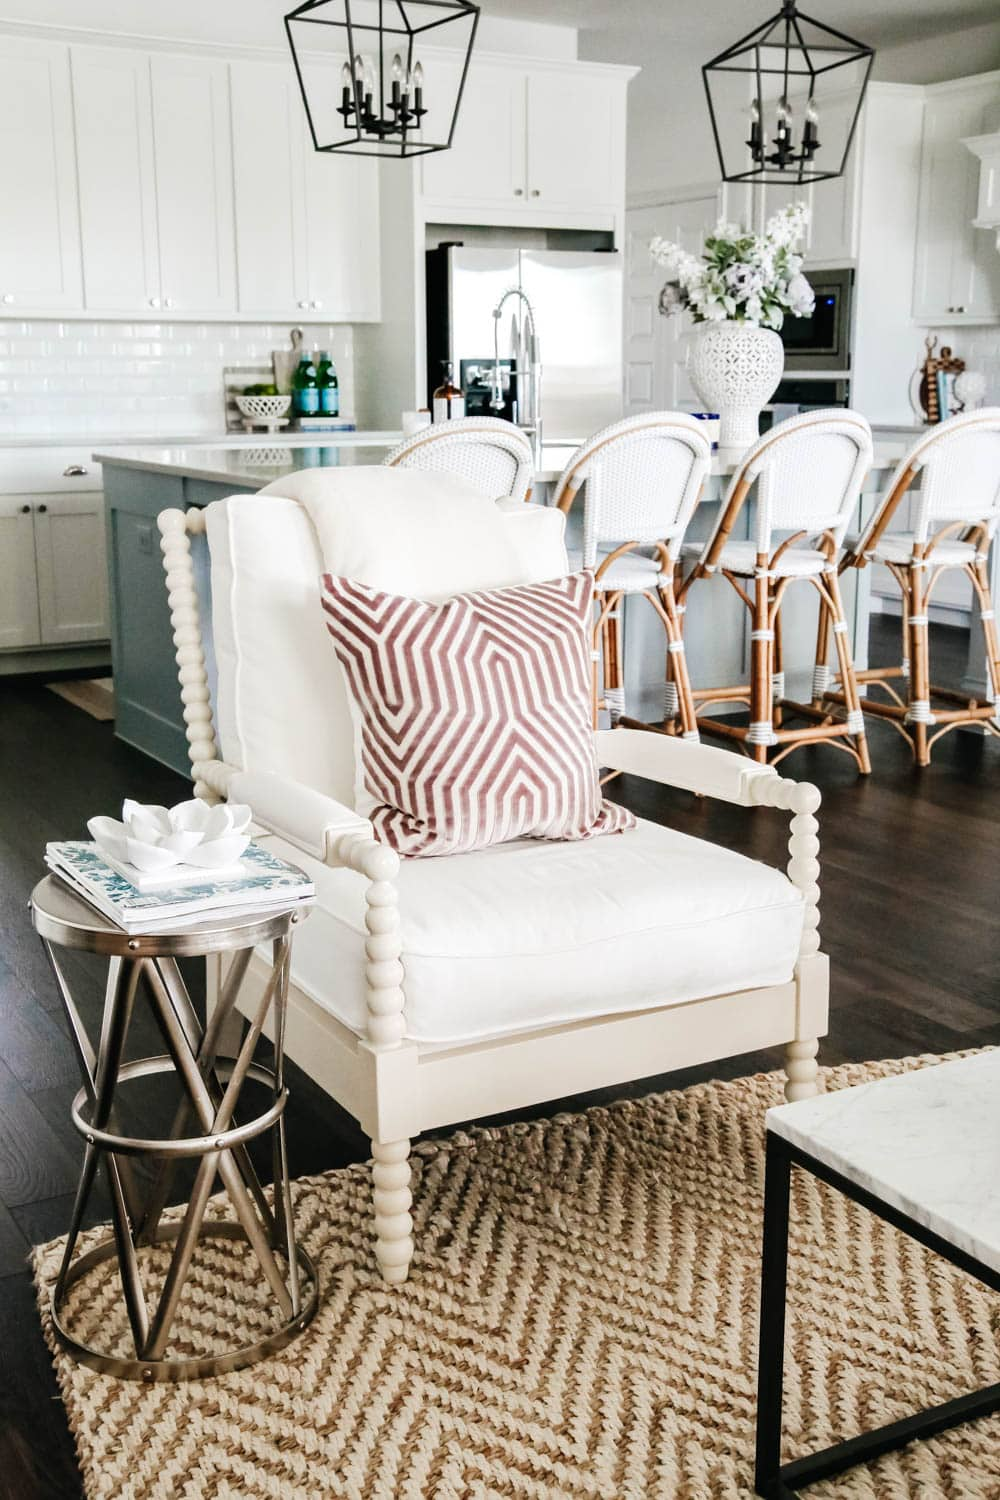 Living room inspiration. White paint, coastal style, transitional style, home tour, design tips for a living room. #livingroominspo #livingroom #hometour #ABlissfulNest